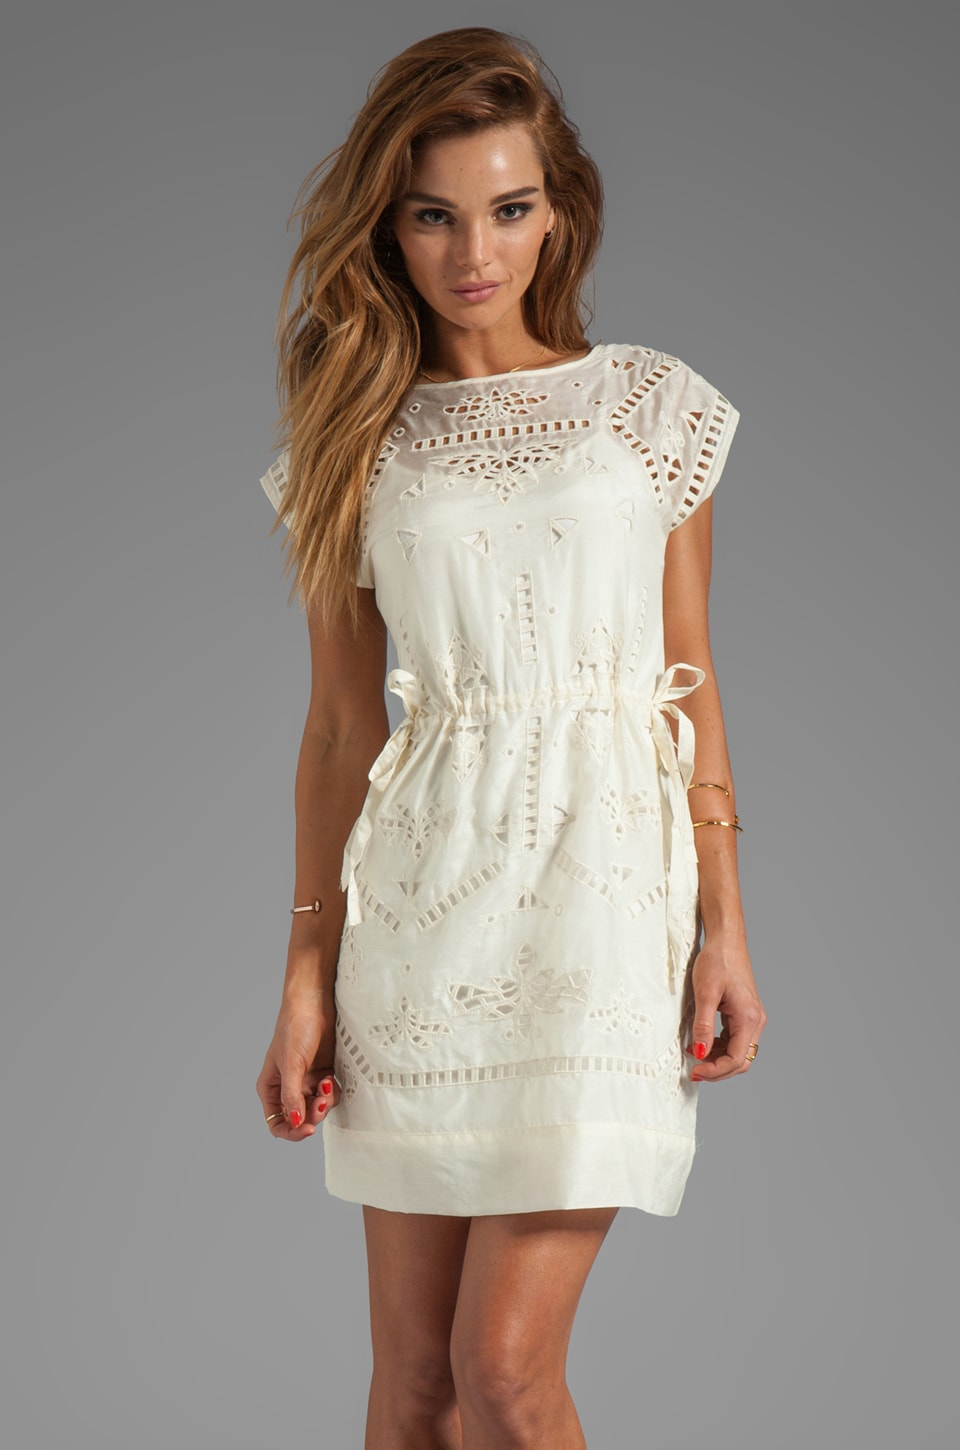 Greylin Bianca Embroidered Dress in Ivory